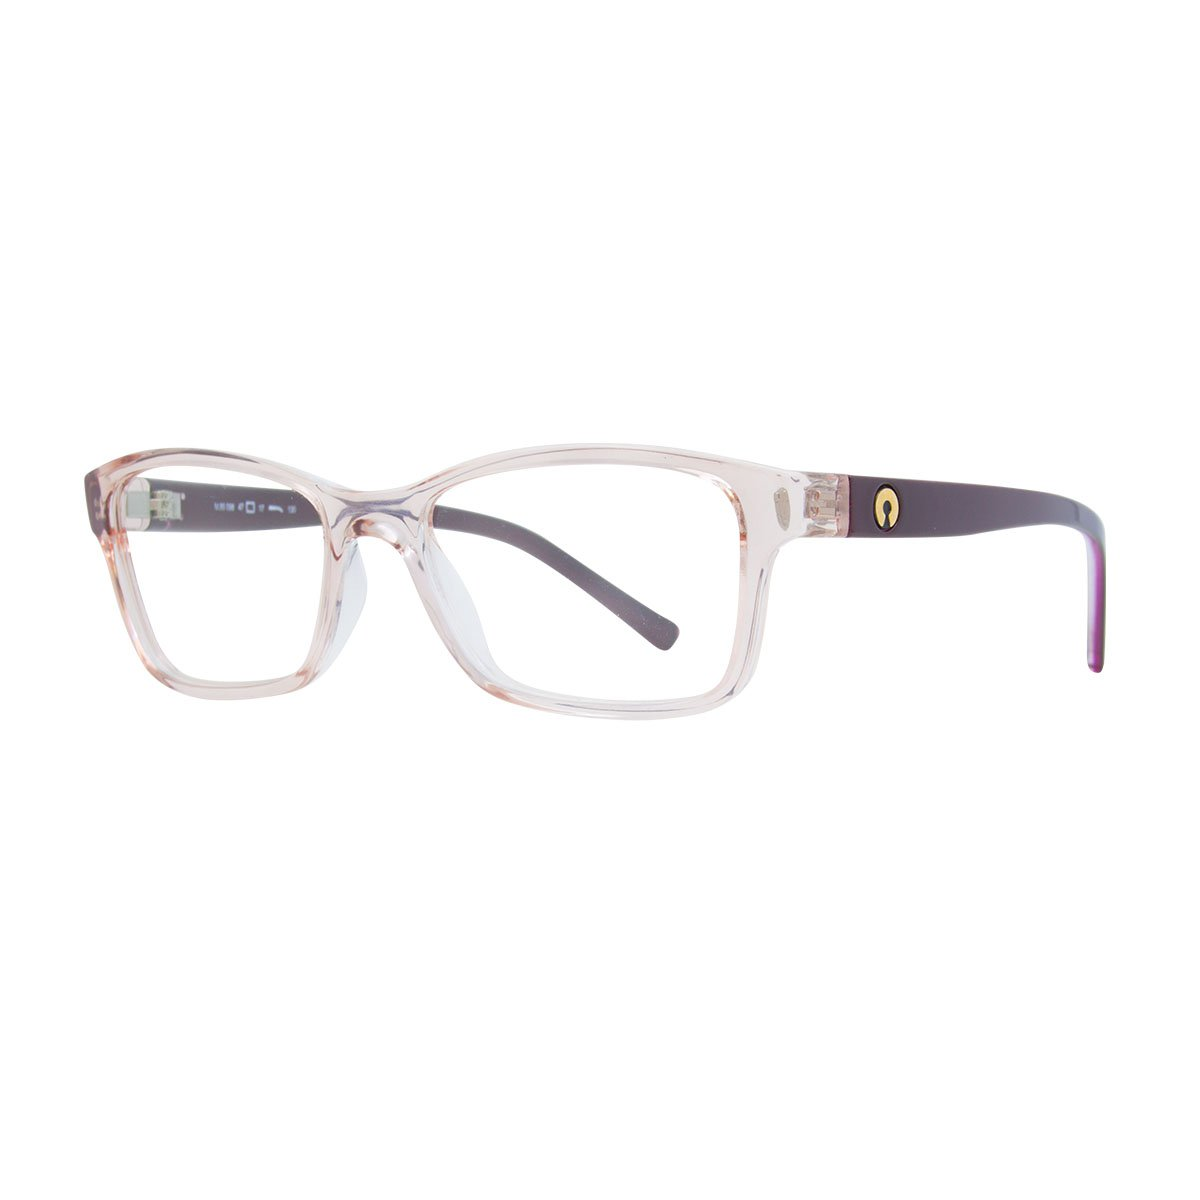 SECRET GRILAMID 80096 GLASSY CORALE / PASSIONATE